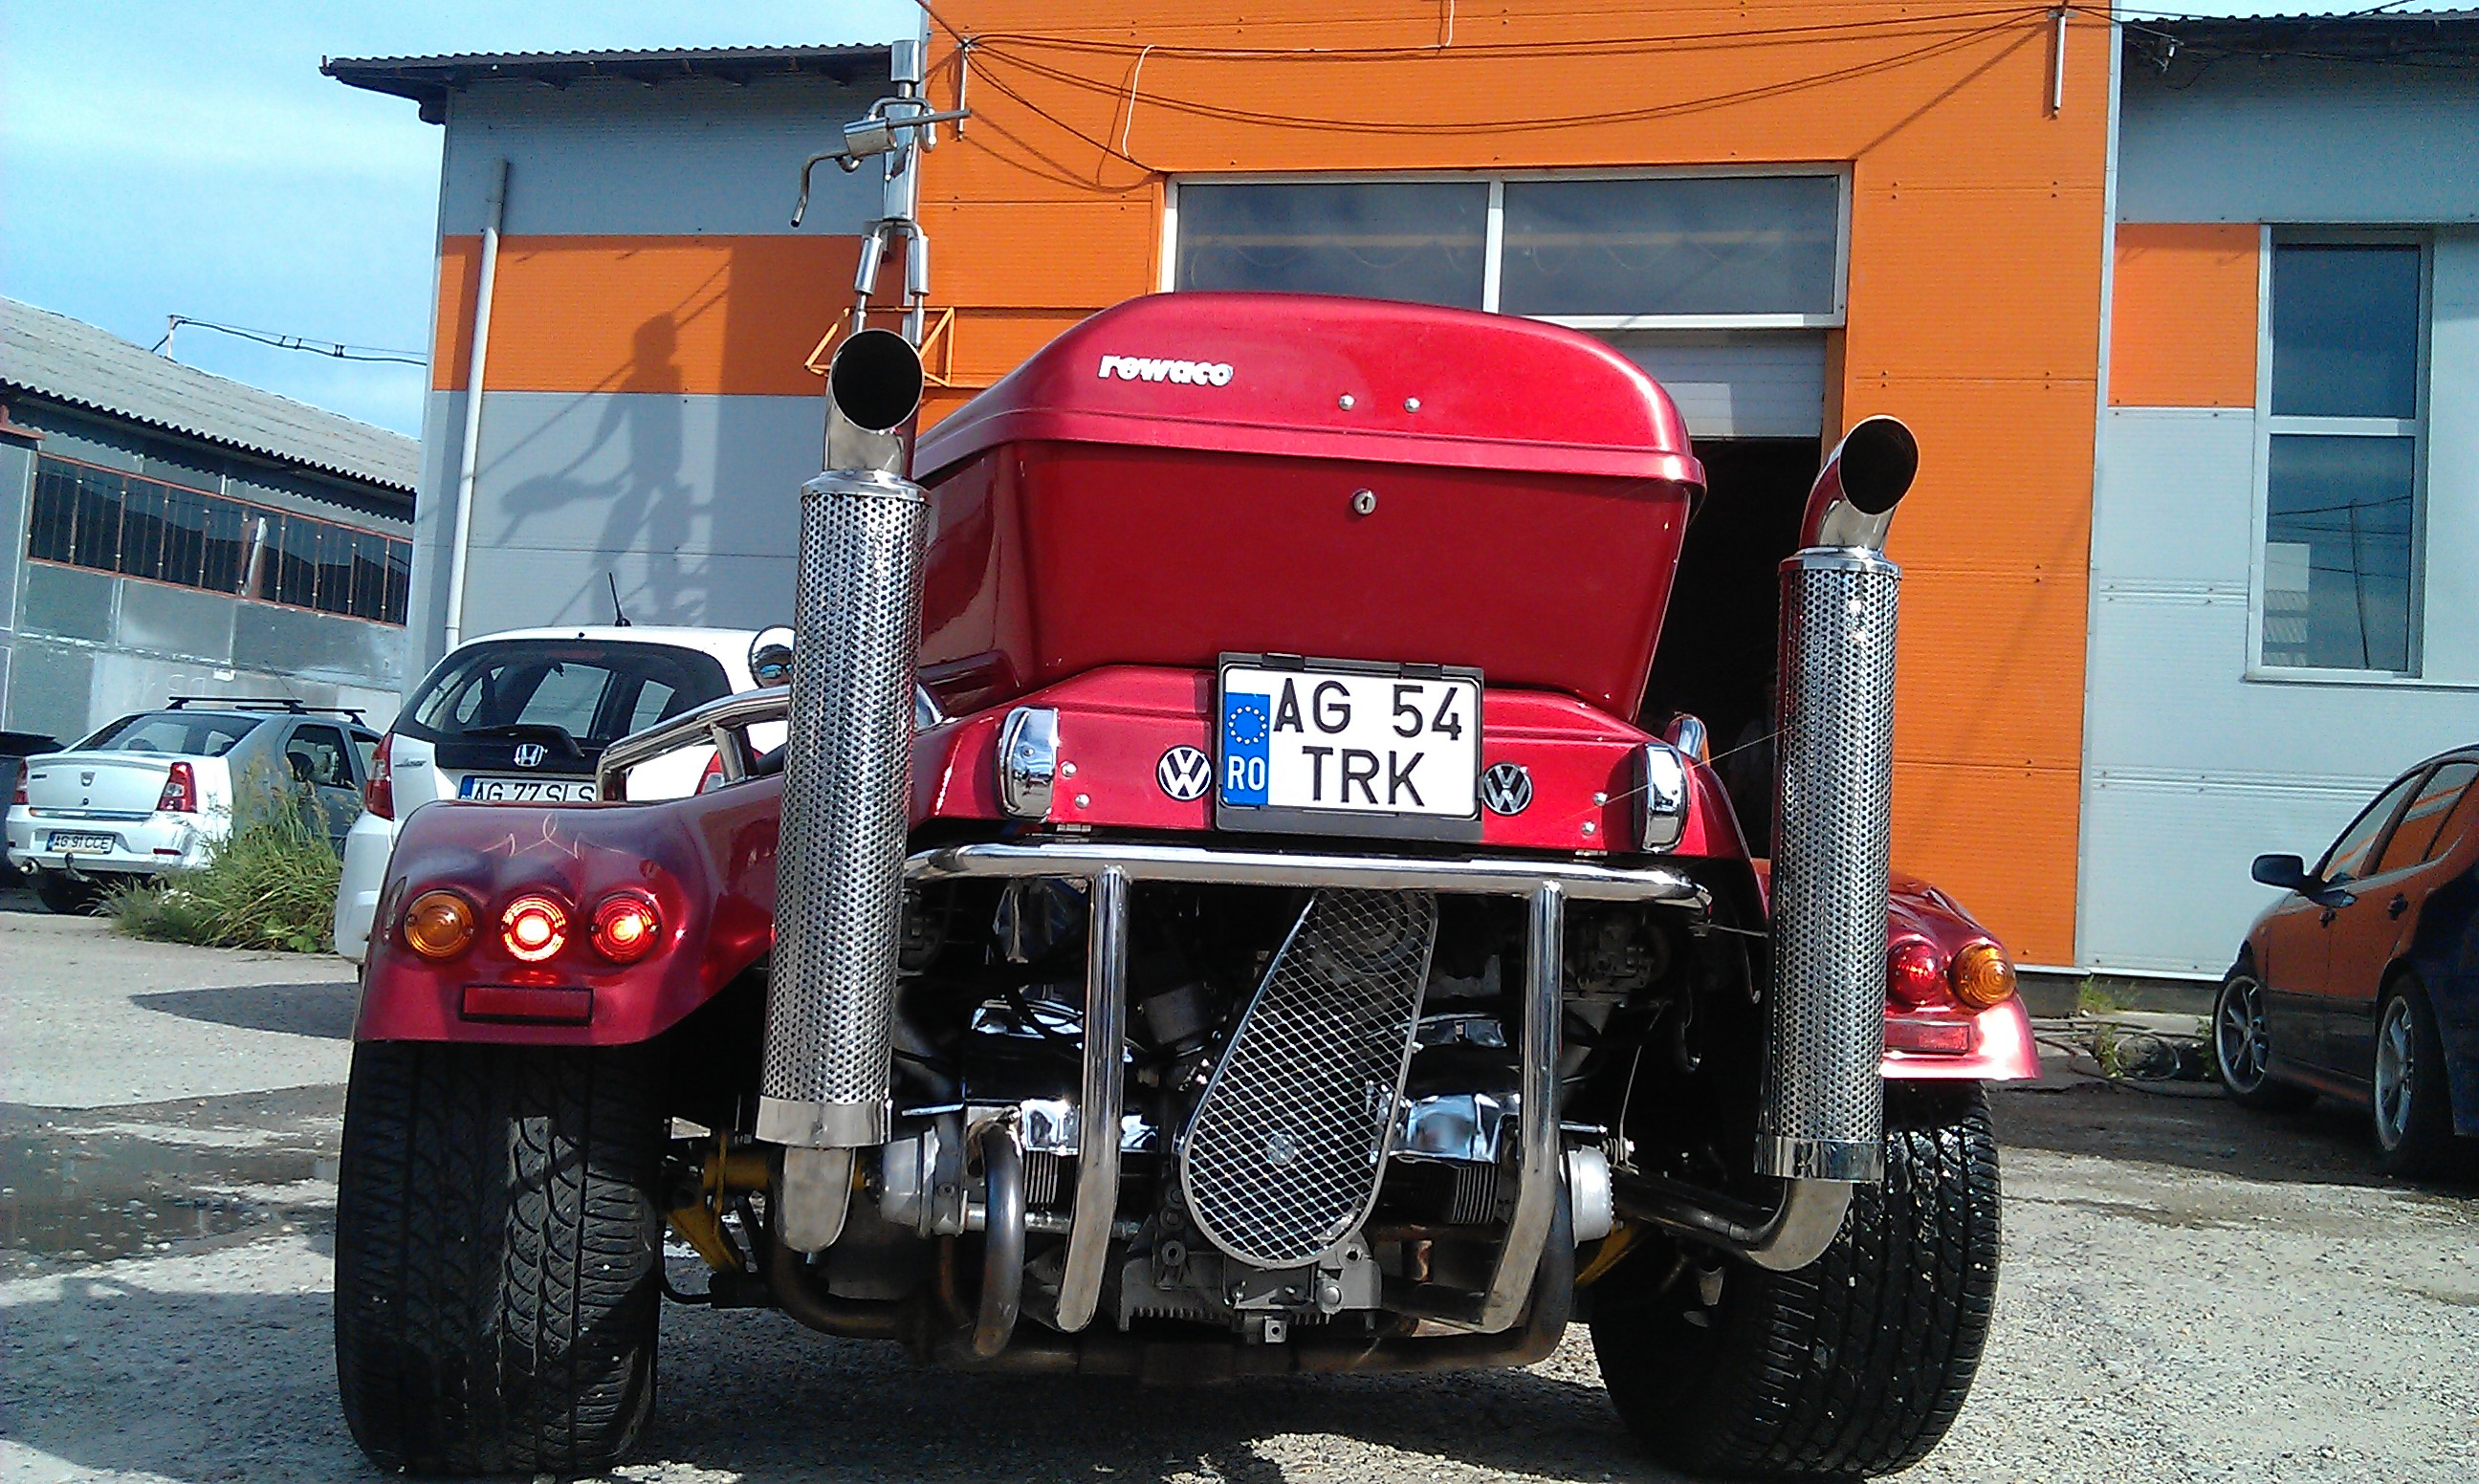 VW Rewaco – exhaust by PILOT